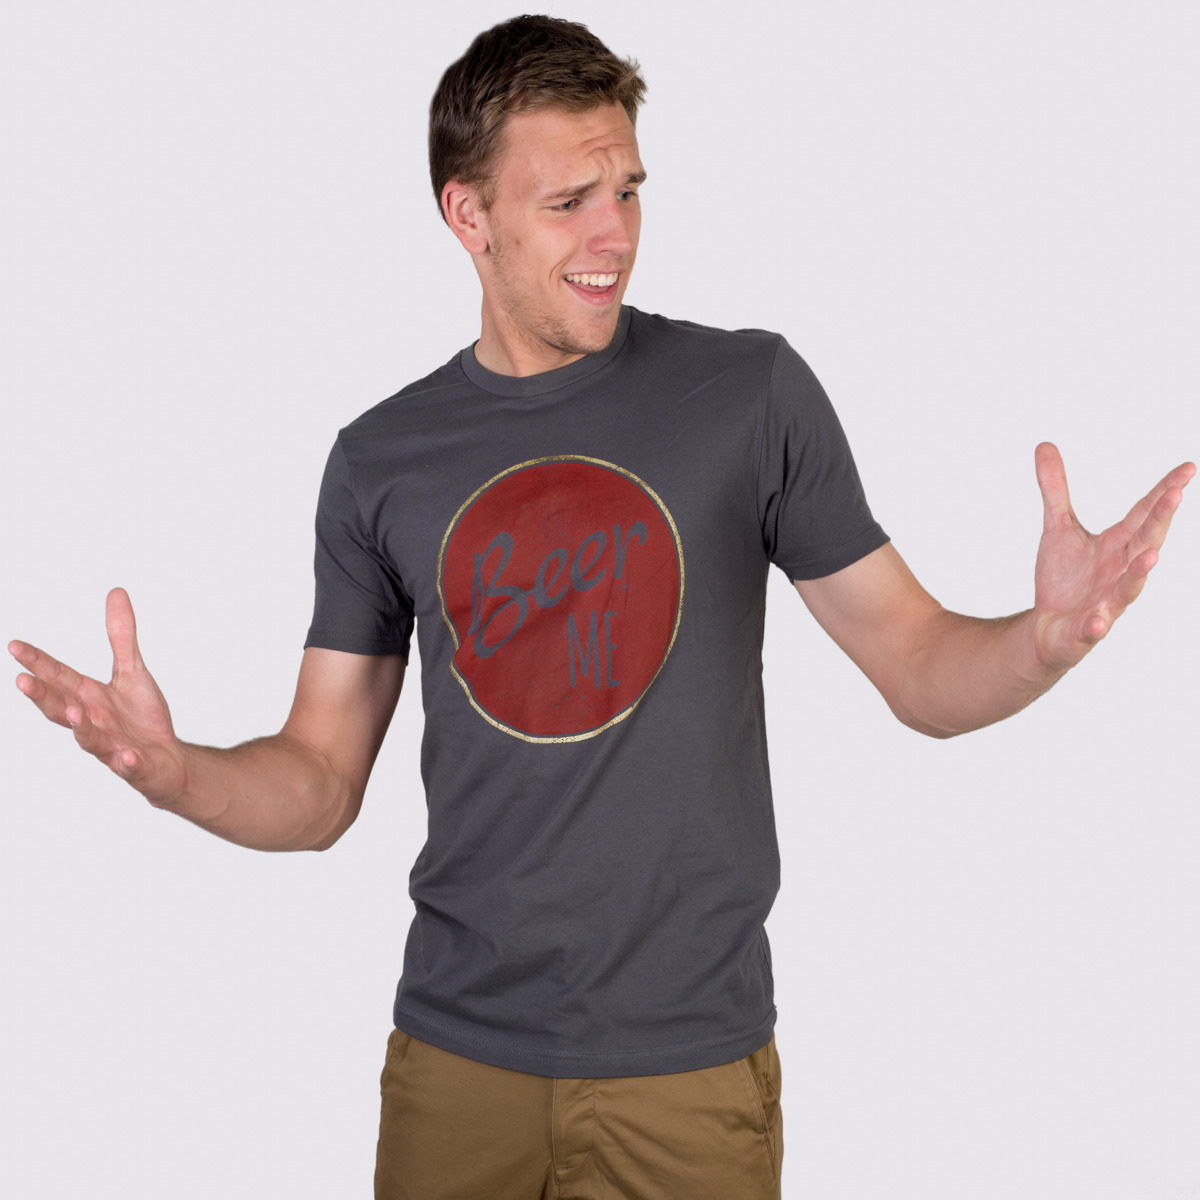 Men's new graphic tees summer clothing Primitive Beginning